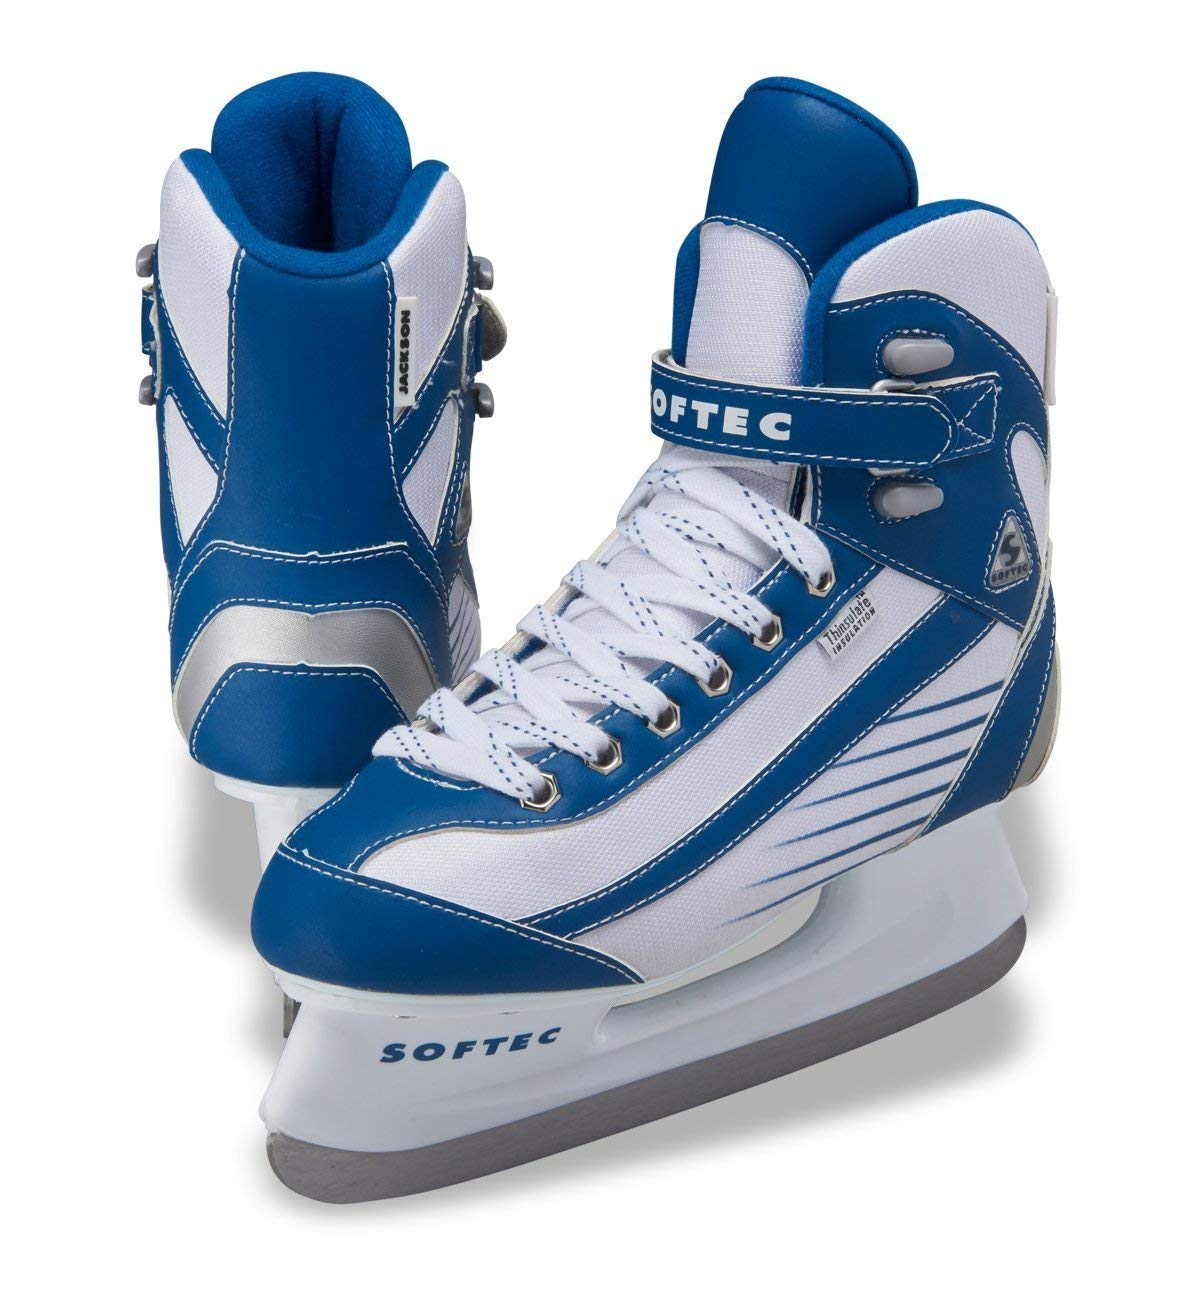 Jackson Ultima Softec Sport ST6100 Blue Ice Skates for Women, Size: Adult 6 by Jackson Ultima